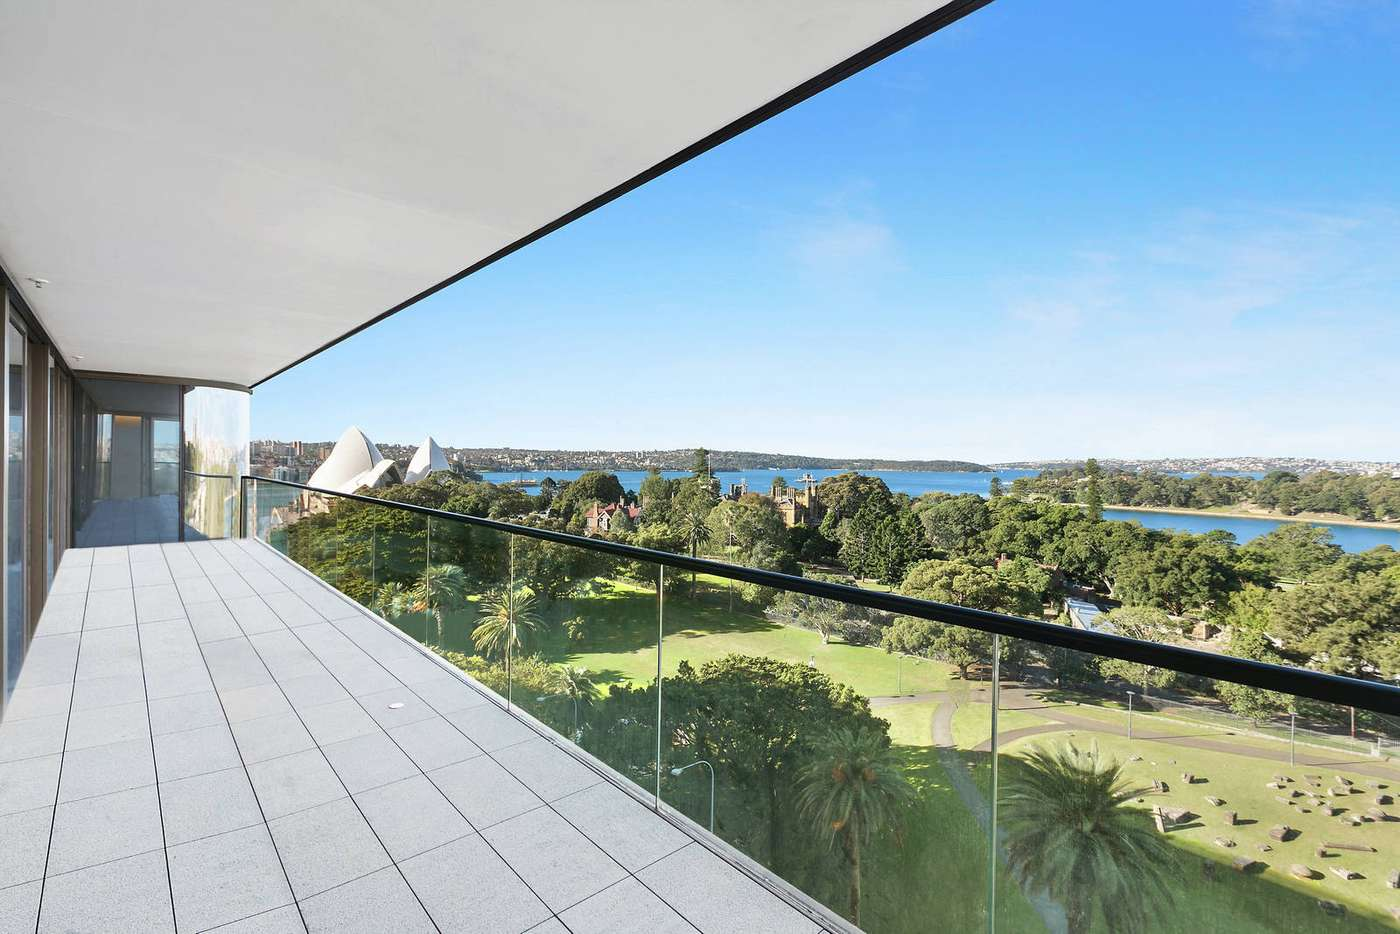 Main view of Homely apartment listing, 1302/71 Macquarie Street, Sydney, NSW 2000